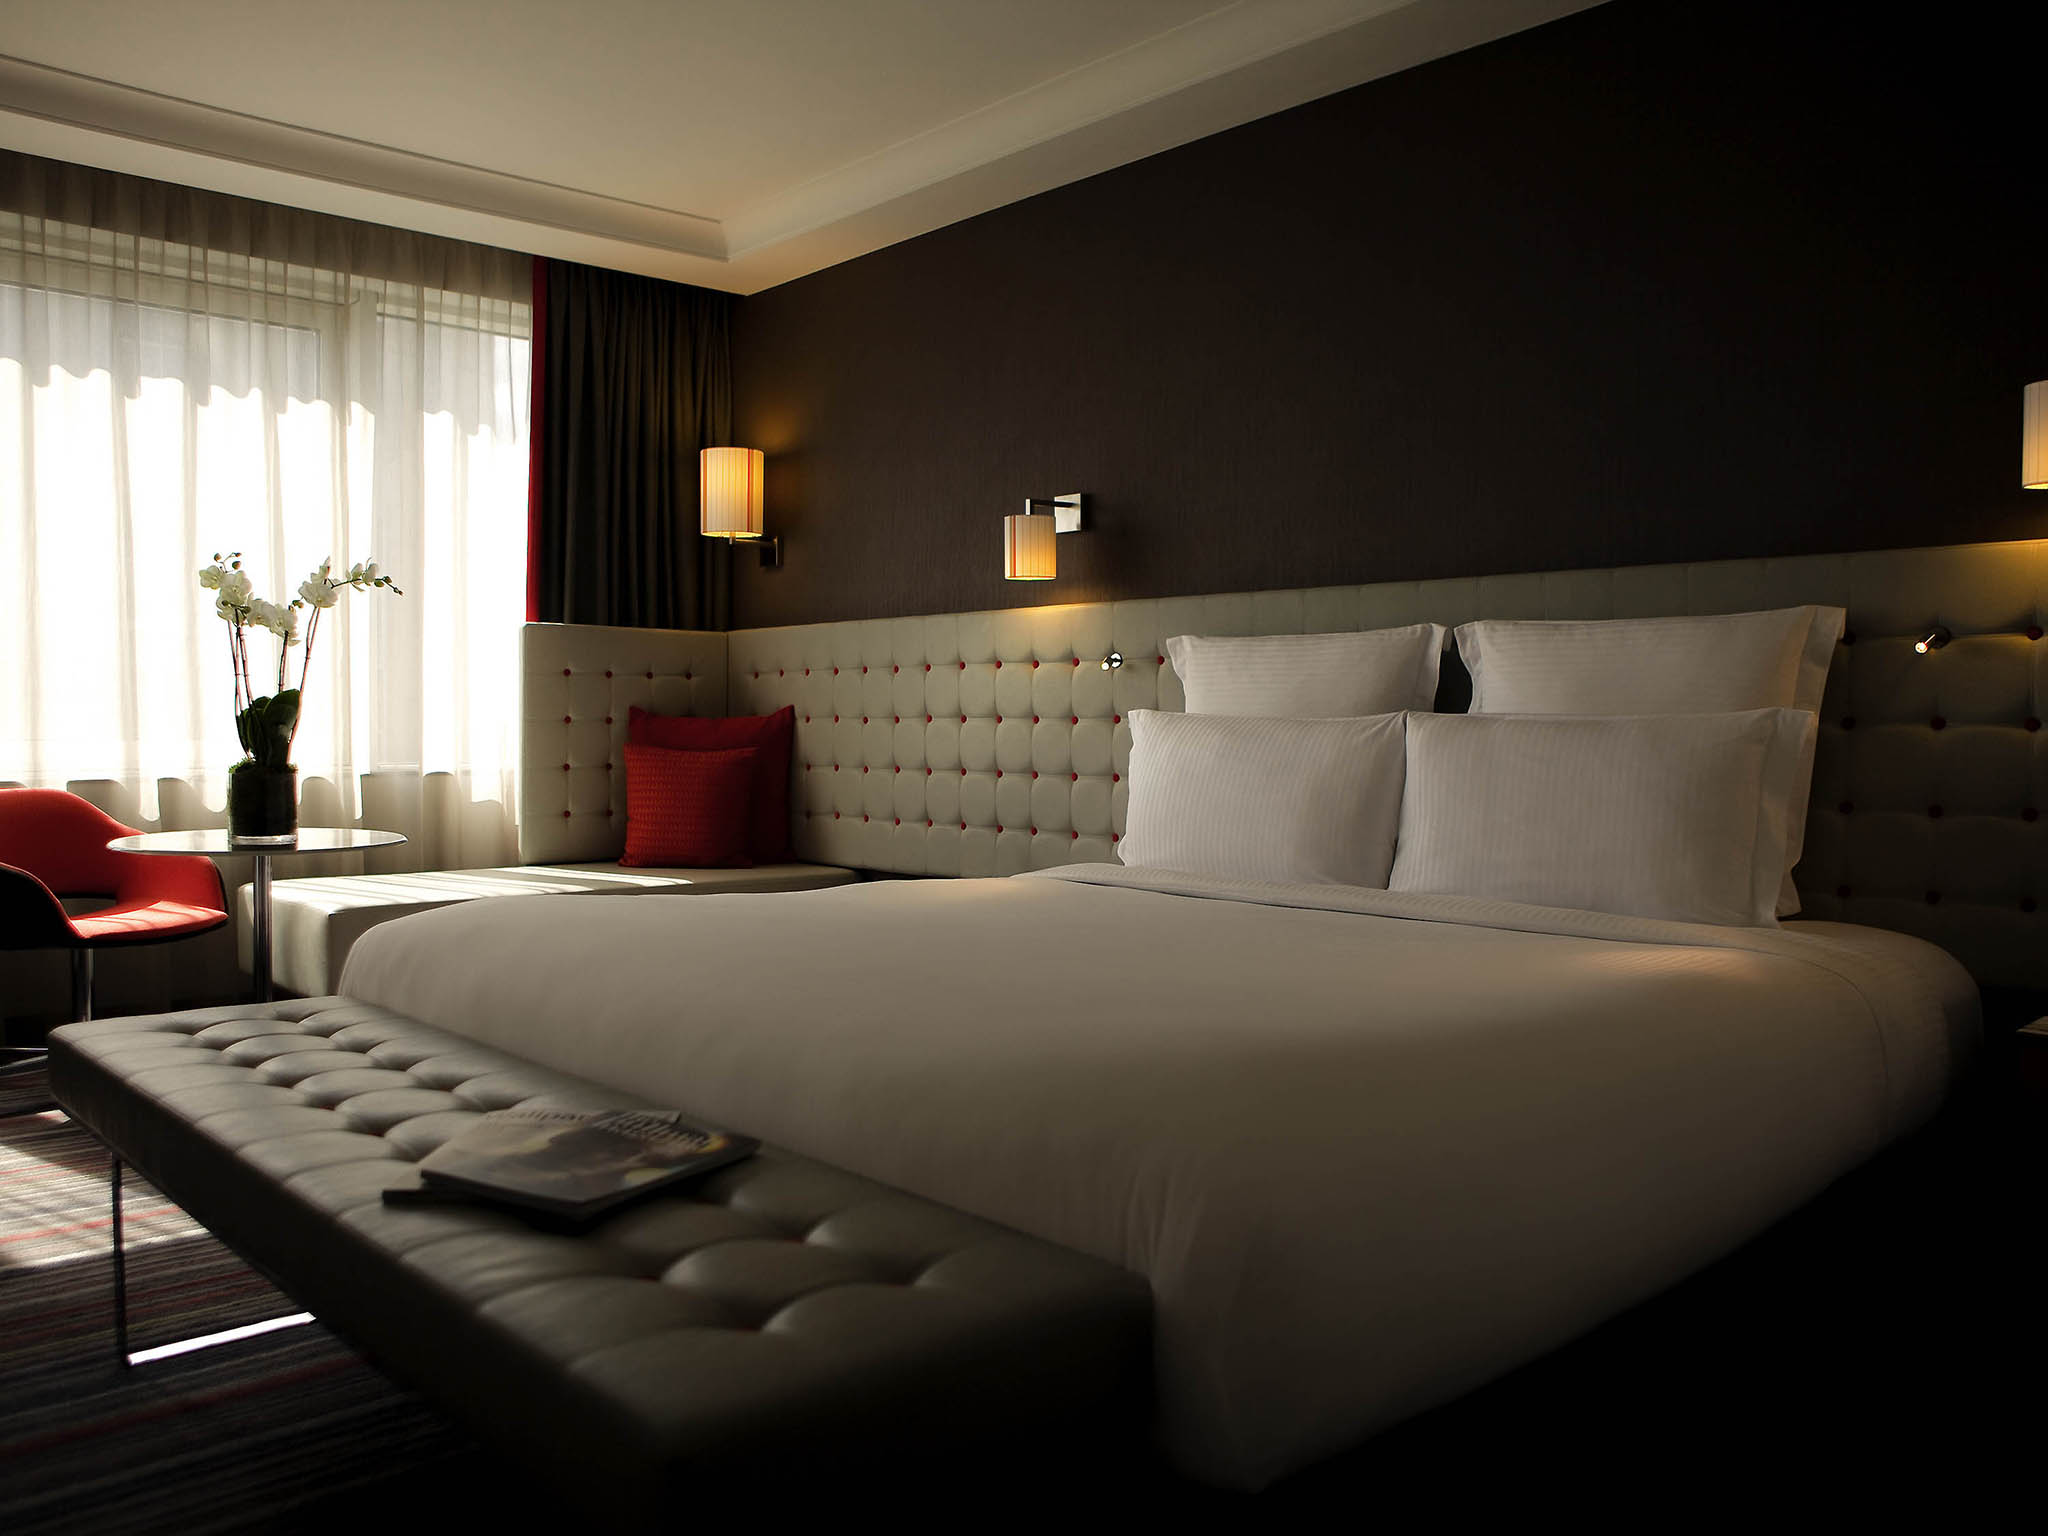 Hotel london cheap internet rates for kings cross hotels in london -  Rooms Pullman London St Pancras